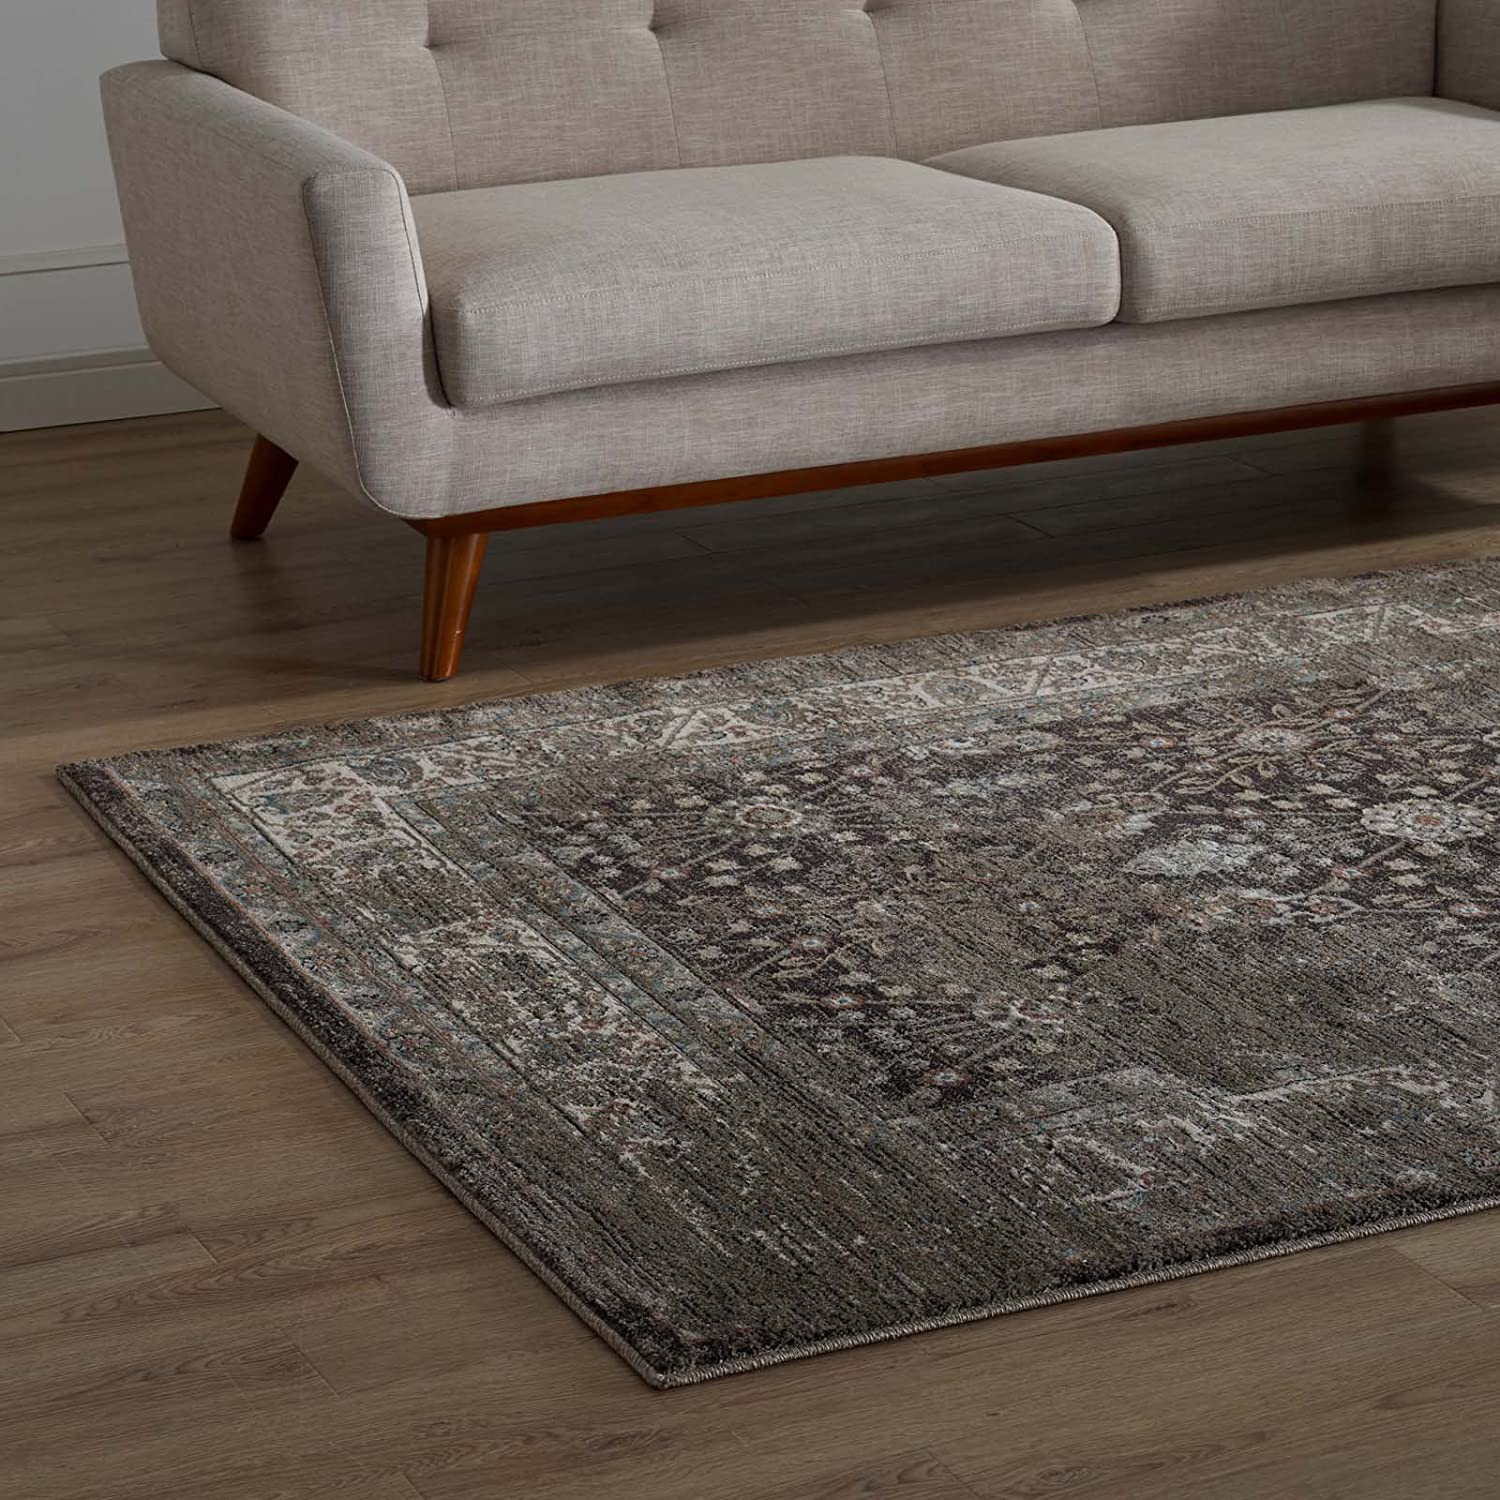 Modway Berit Distressed Vintage Long-awaited Floral Lattice Area Rug B 5x8 Super special price In